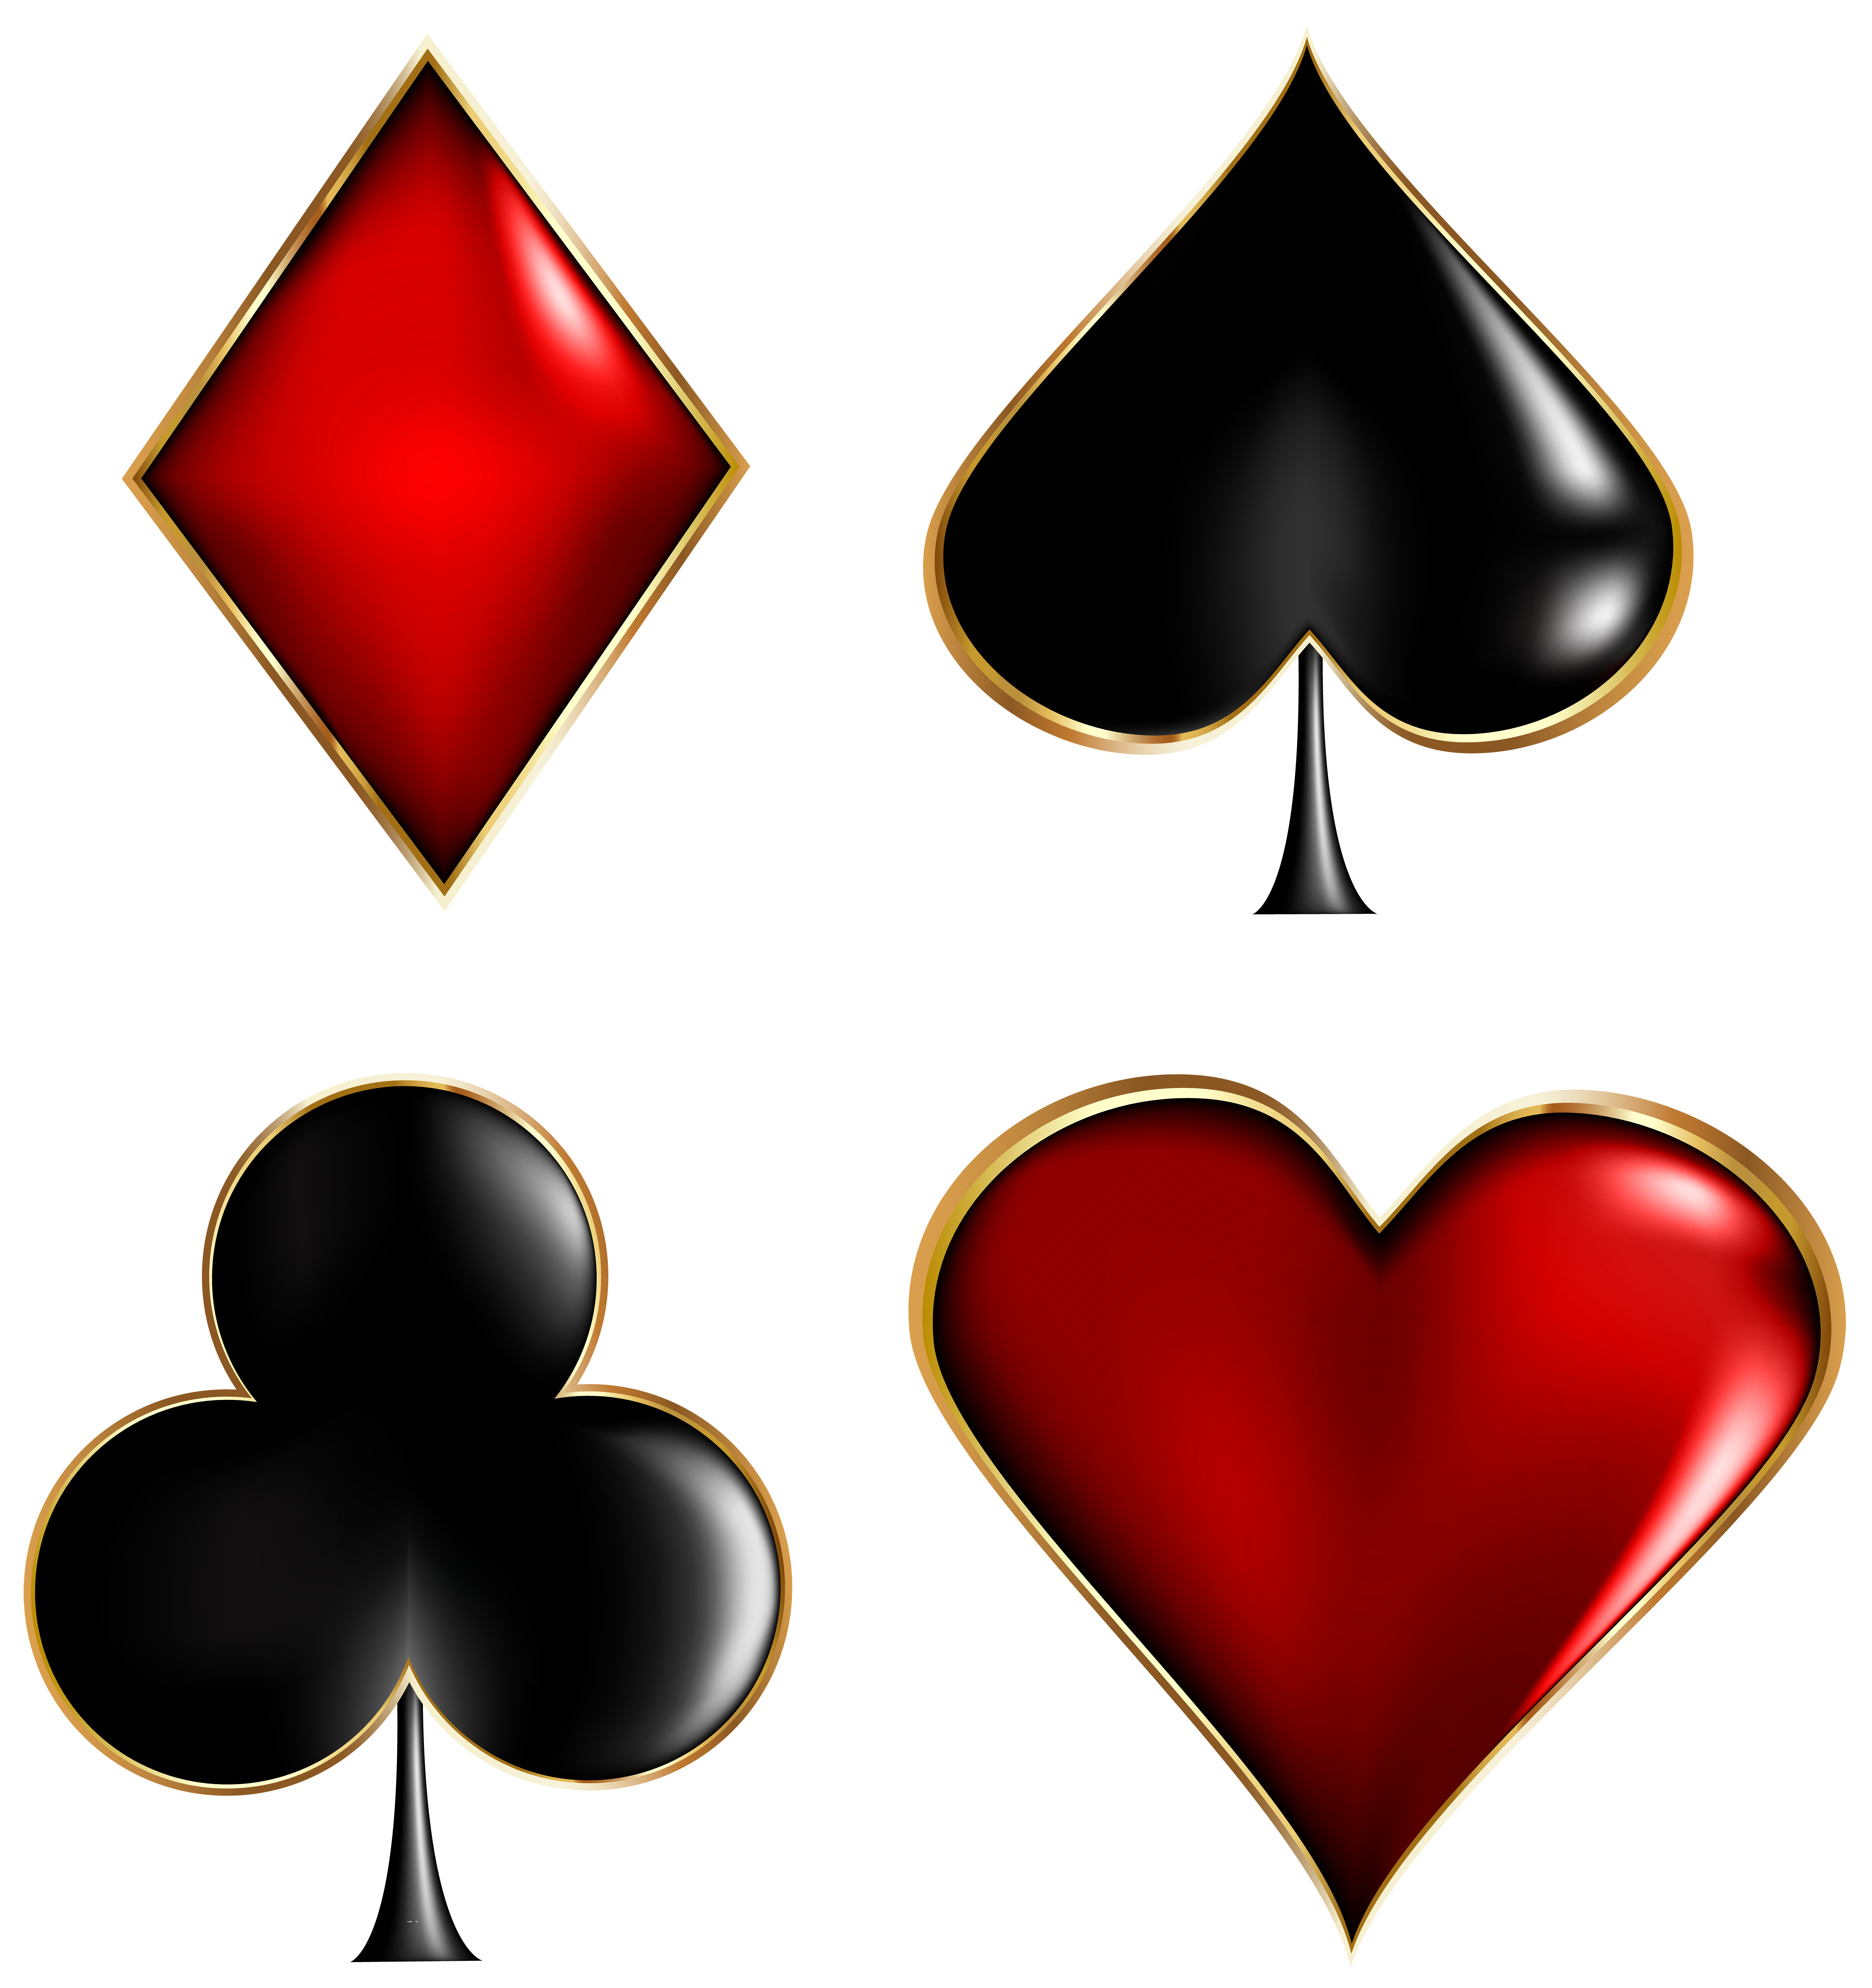 Heart card clipart jpg royalty free stock Card Suits Transparent Clip Art Image | Gallery Yopriceville - High ... jpg royalty free stock